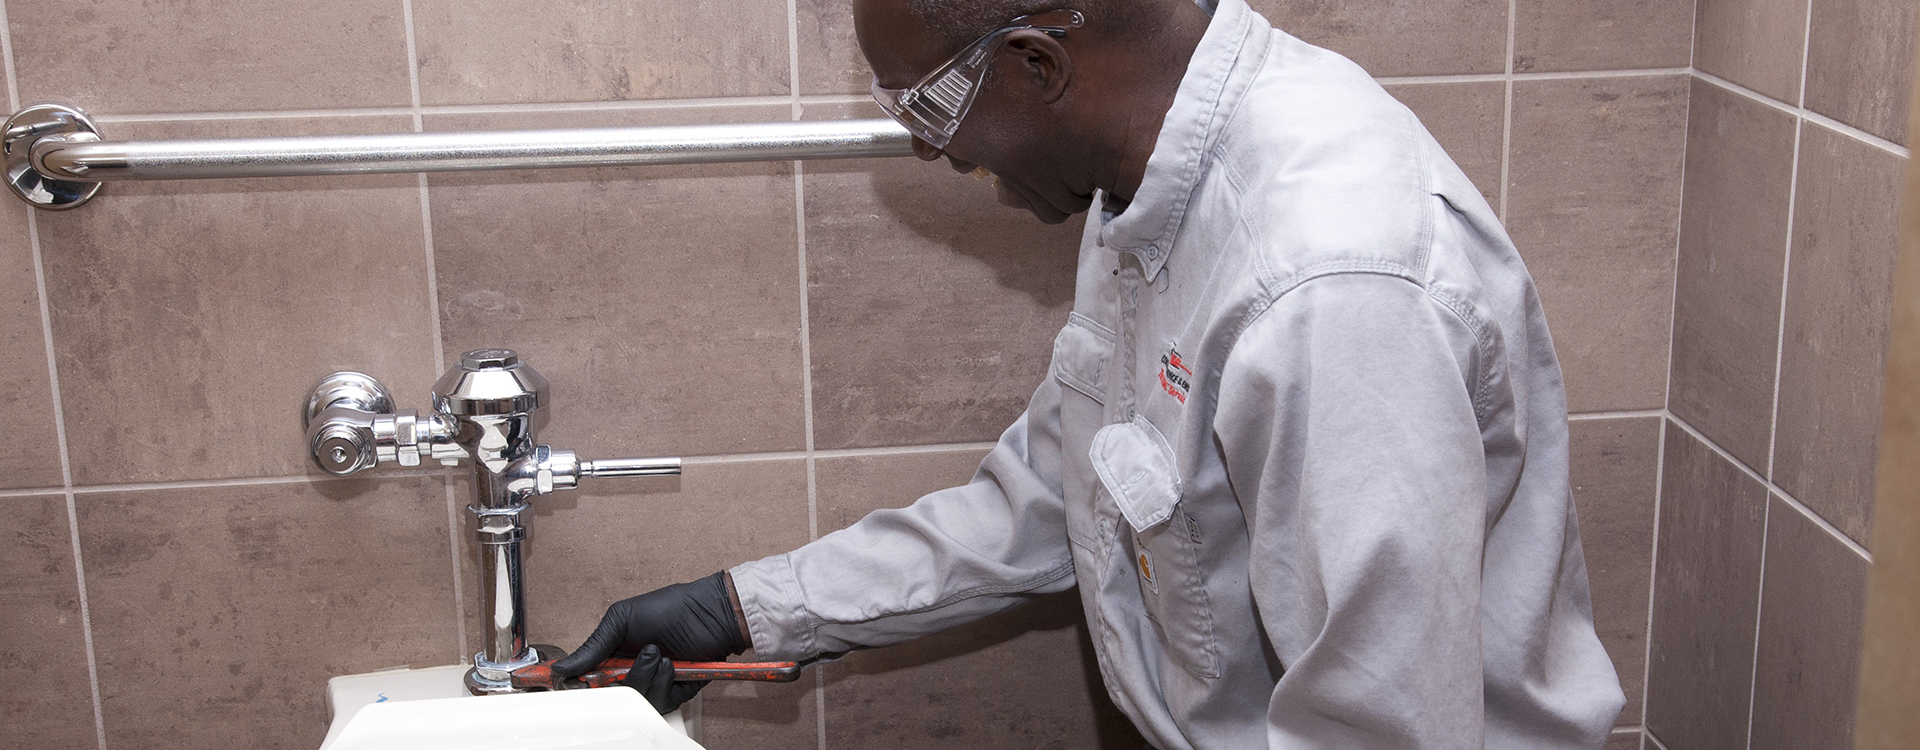 Commercial Plumbing Services - New Cumberland PA